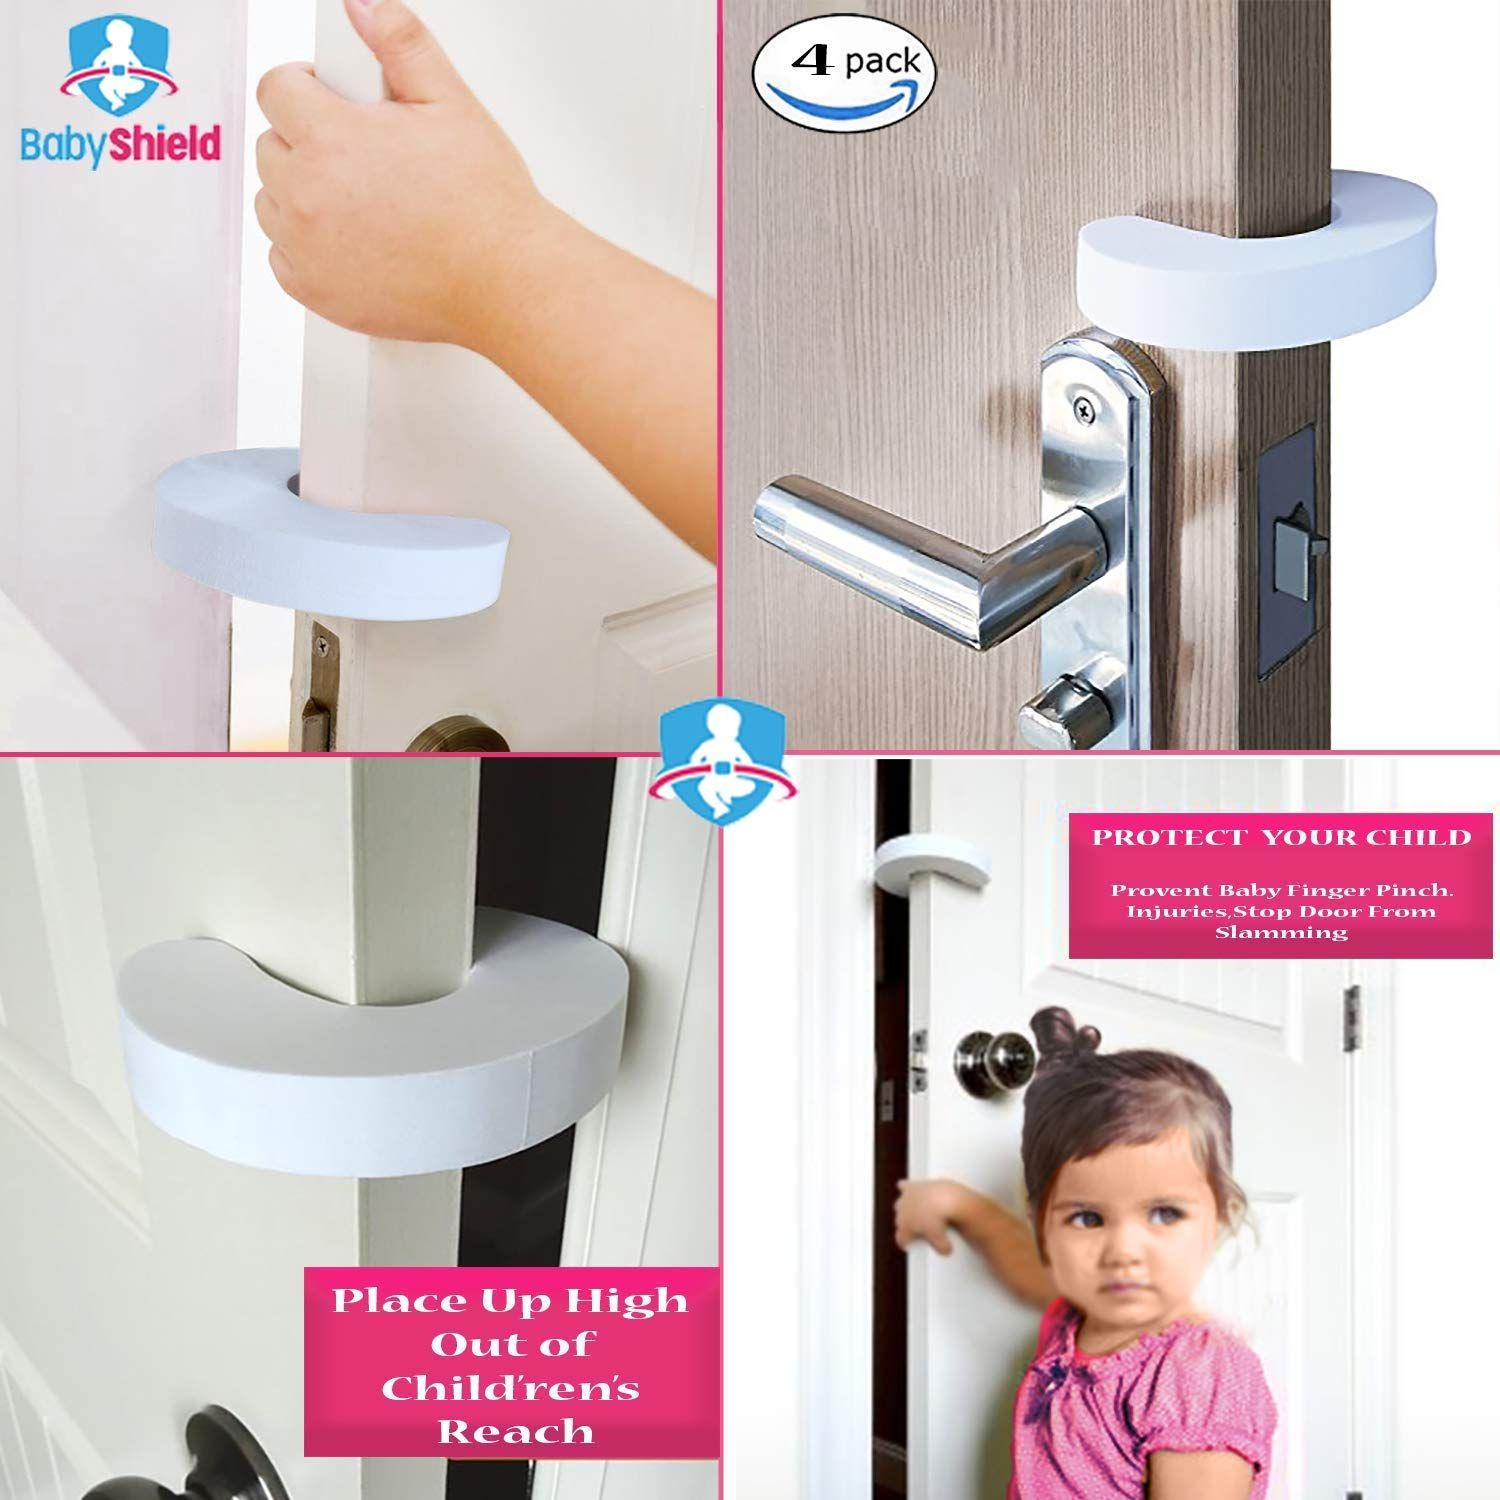 The Ultimate Baby Safety Kit 38 Pieces 4 Cabinet Locks 4 Cabinet Latches 12 Clear Corner Prtotectors 4 Finger Pinch Guards 12 Baby Safety Safety Kit Pack Baby